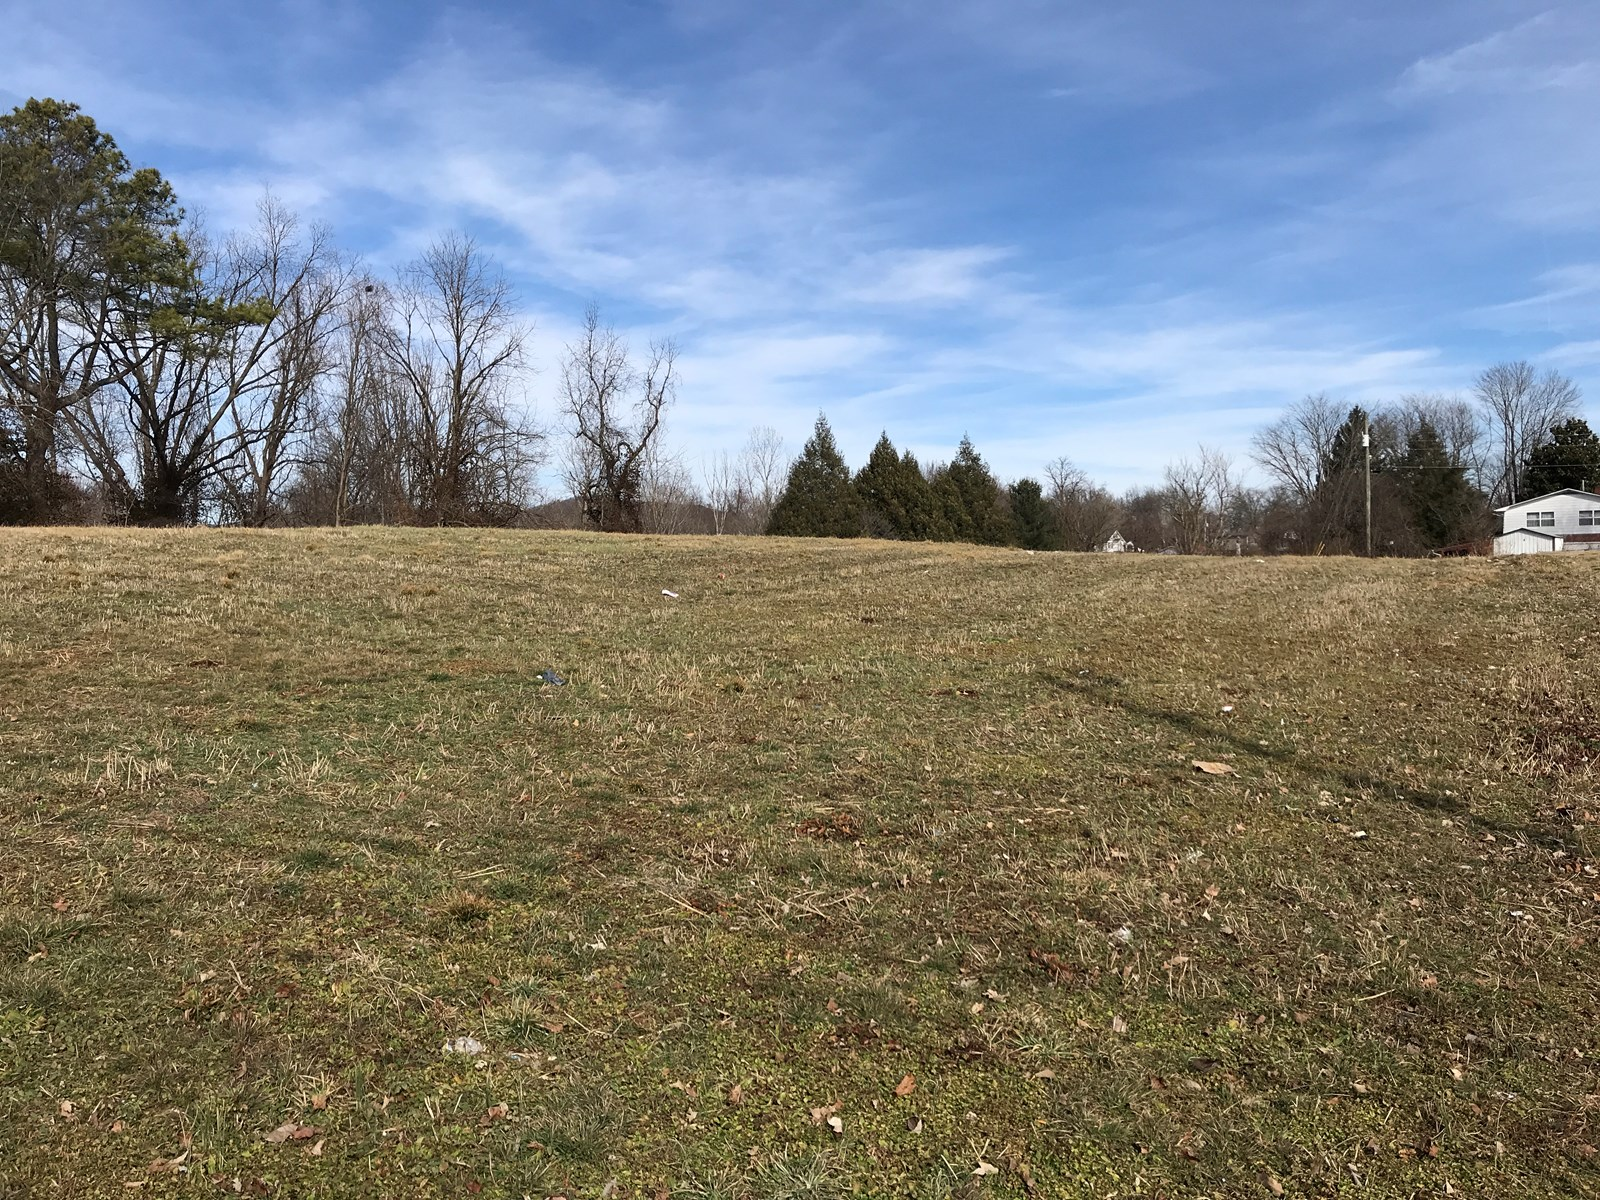 Land for sale in Albany, Kentucky.